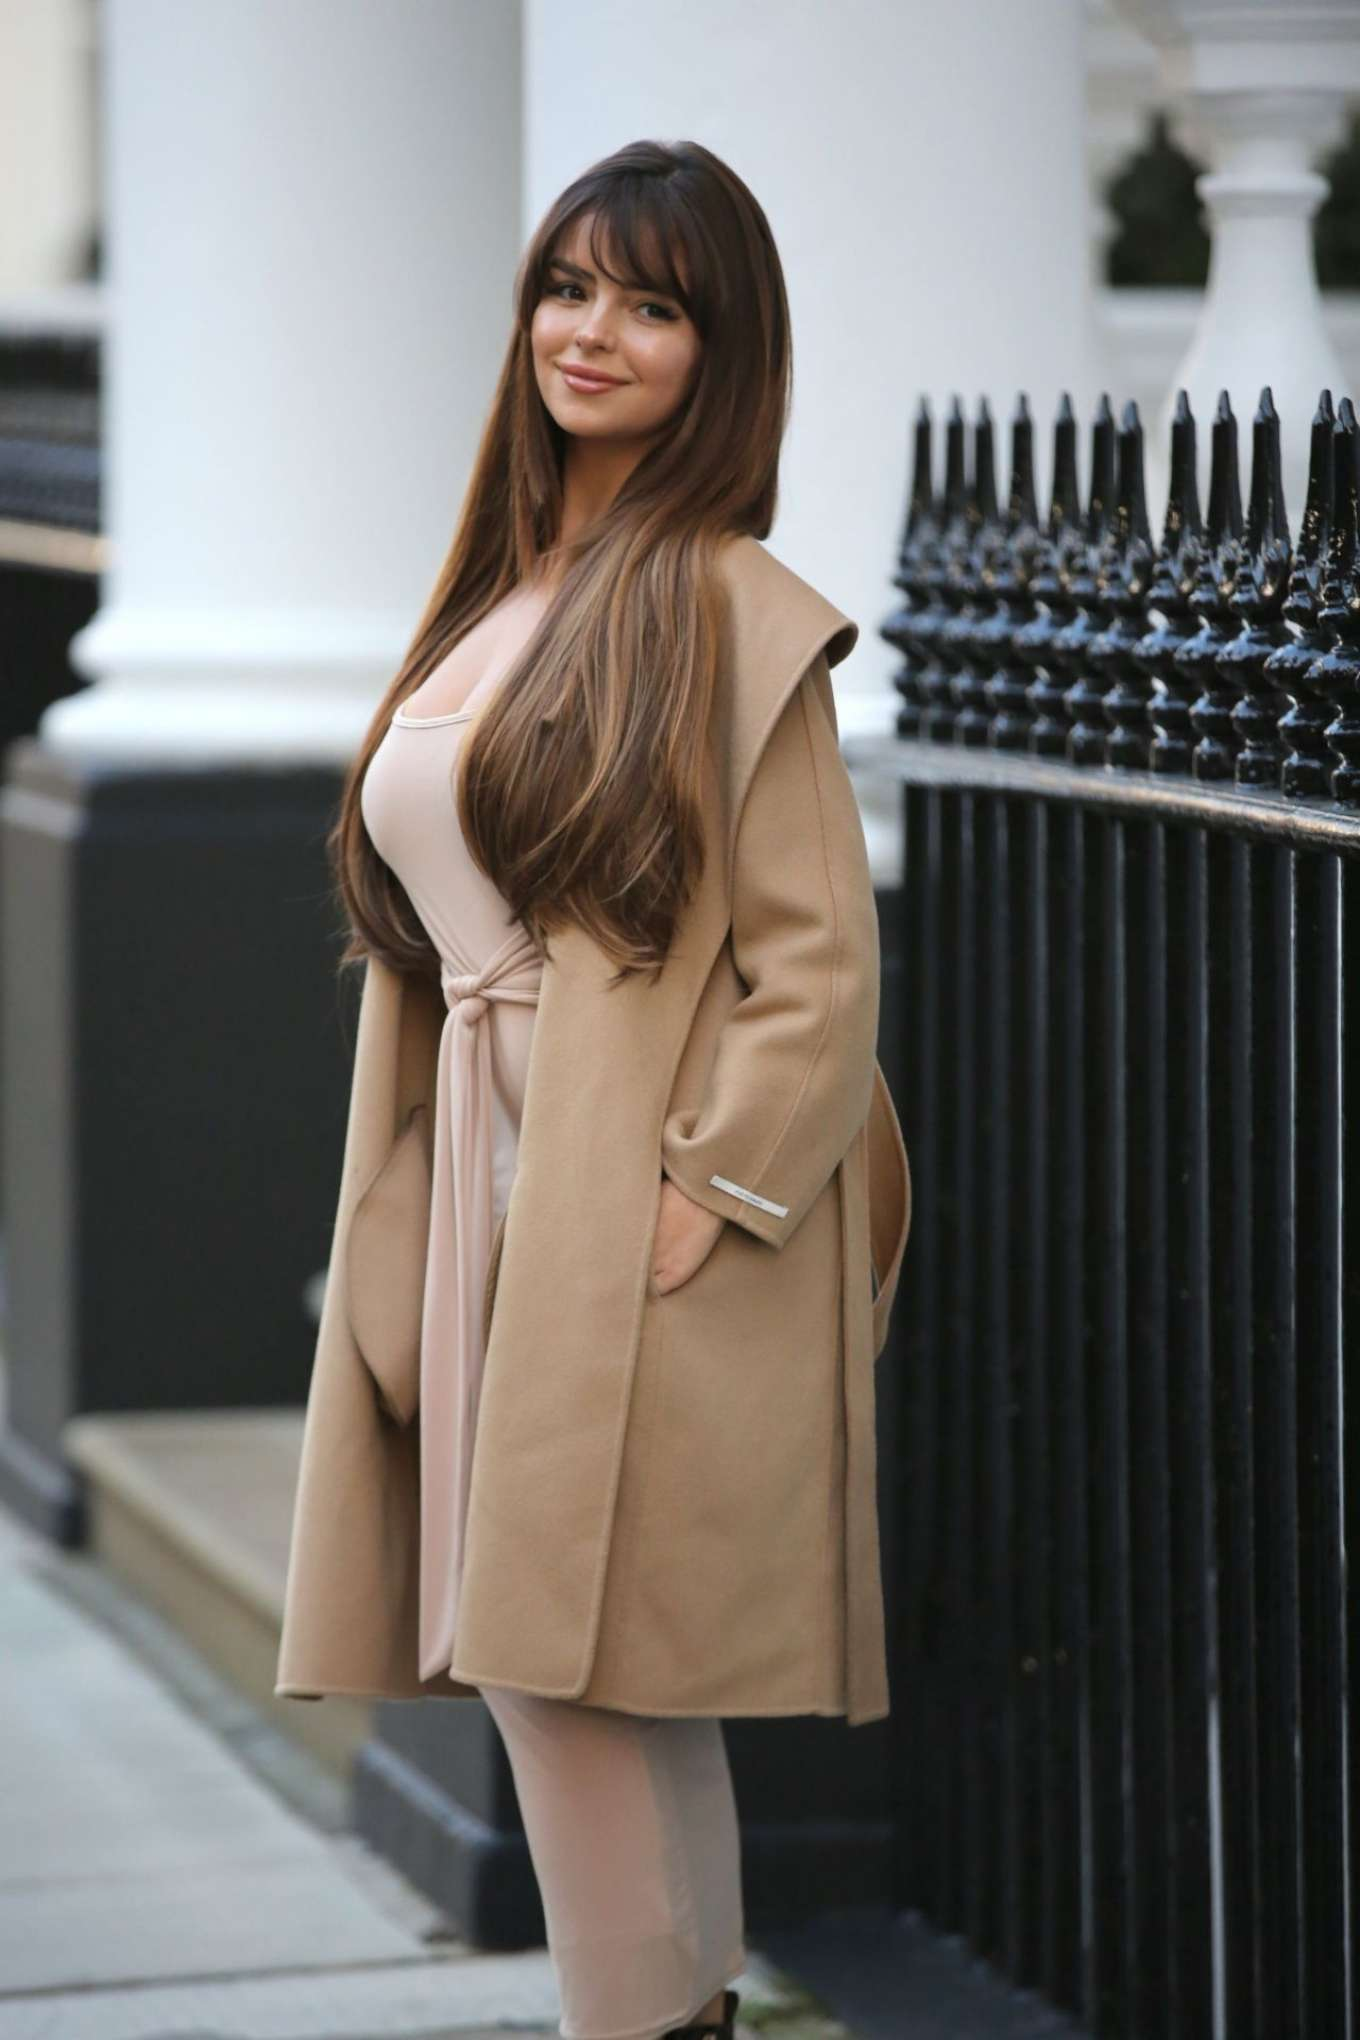 Demi Rose Mawby 2019 : Demi Rose Mawby – Pictured at Pop Up Boutique in London-02